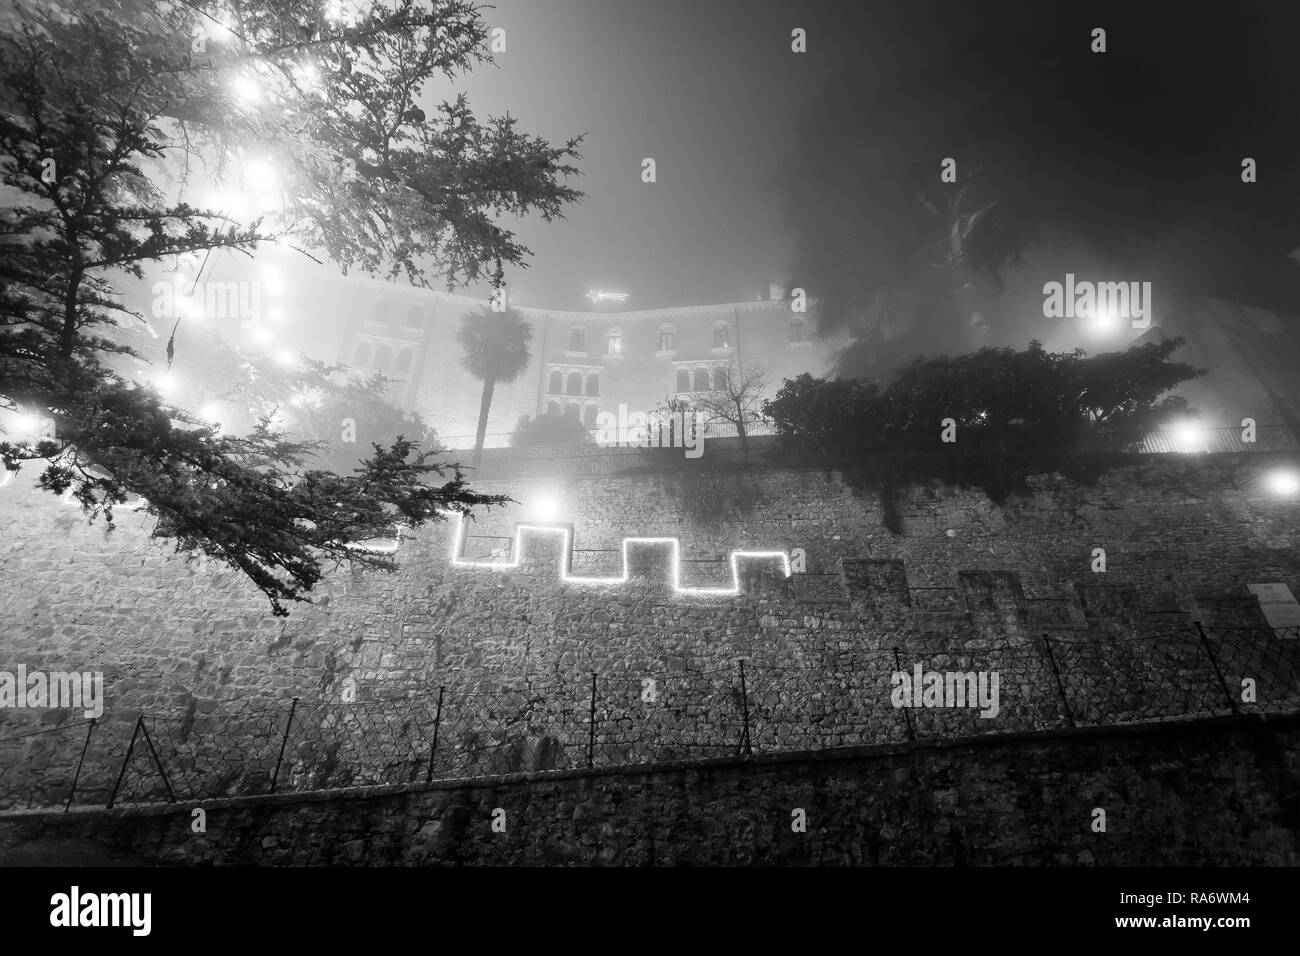 Black and white effect of branches of the largest Christmas tree in Europe immersed in the mist with ancient monastery transformed into a castle, Ciso - Stock Image